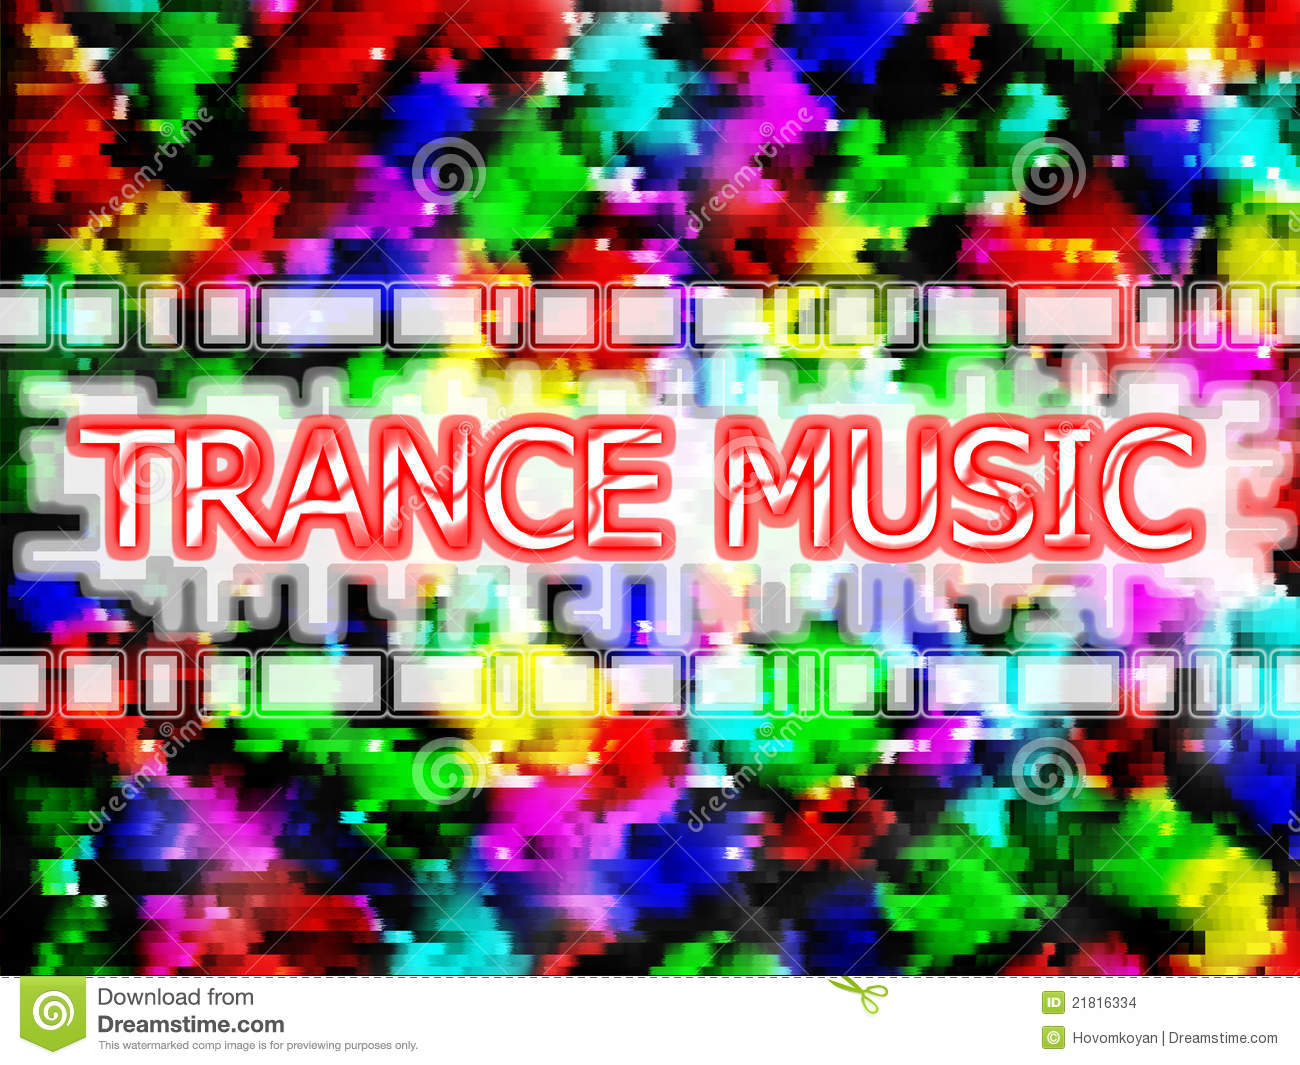 Trance music stock illustration  Illustration of color